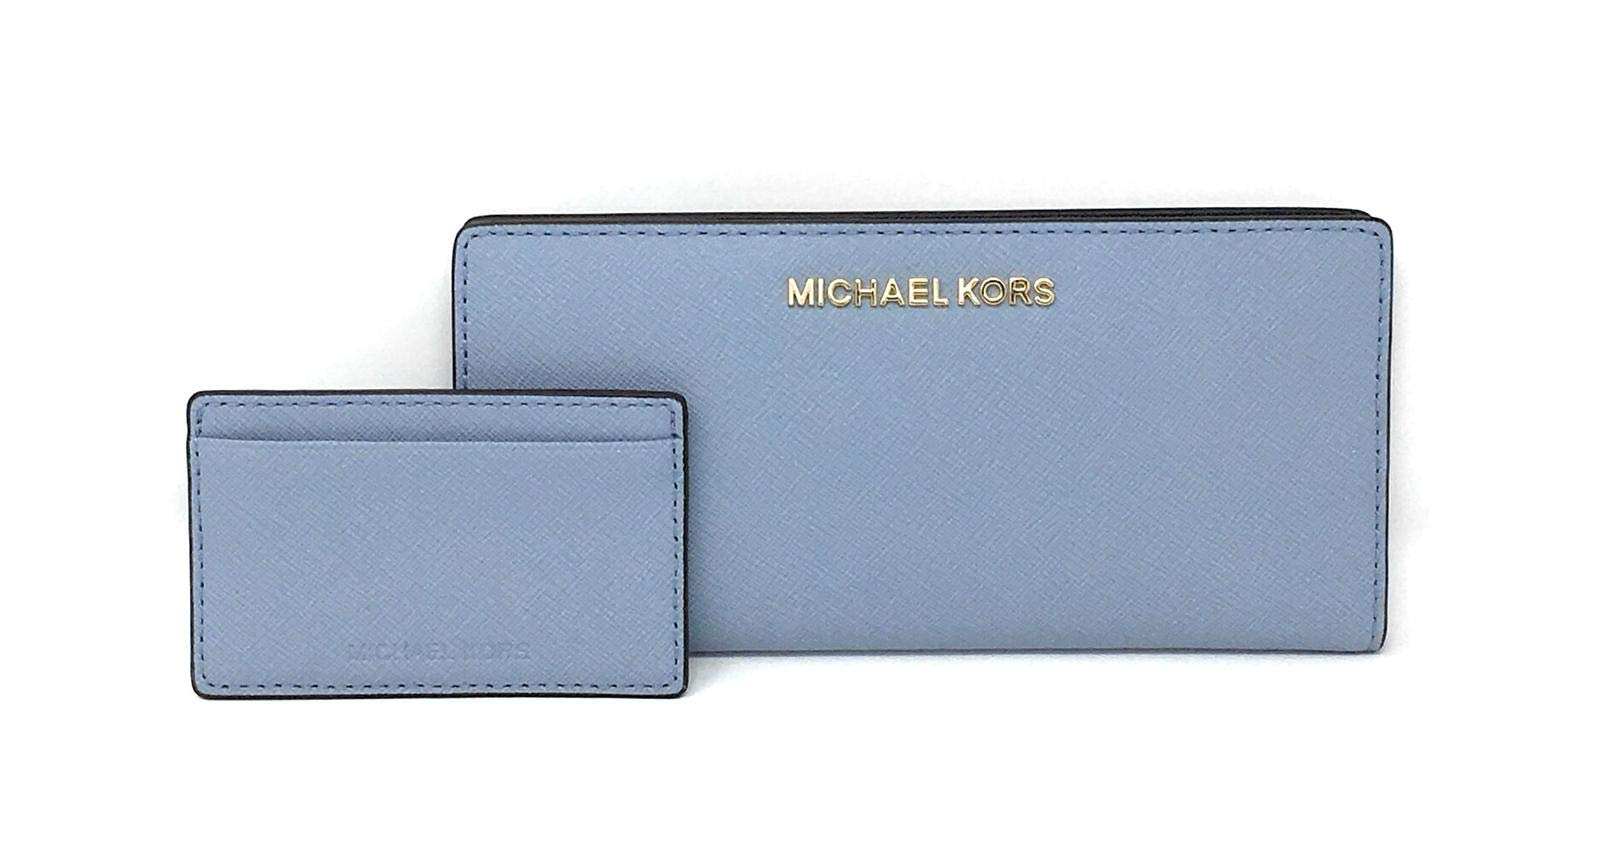 Michael Kors Jet Set Travel Large Card Case Carryall Leather Wallet Pale Blue/Navy